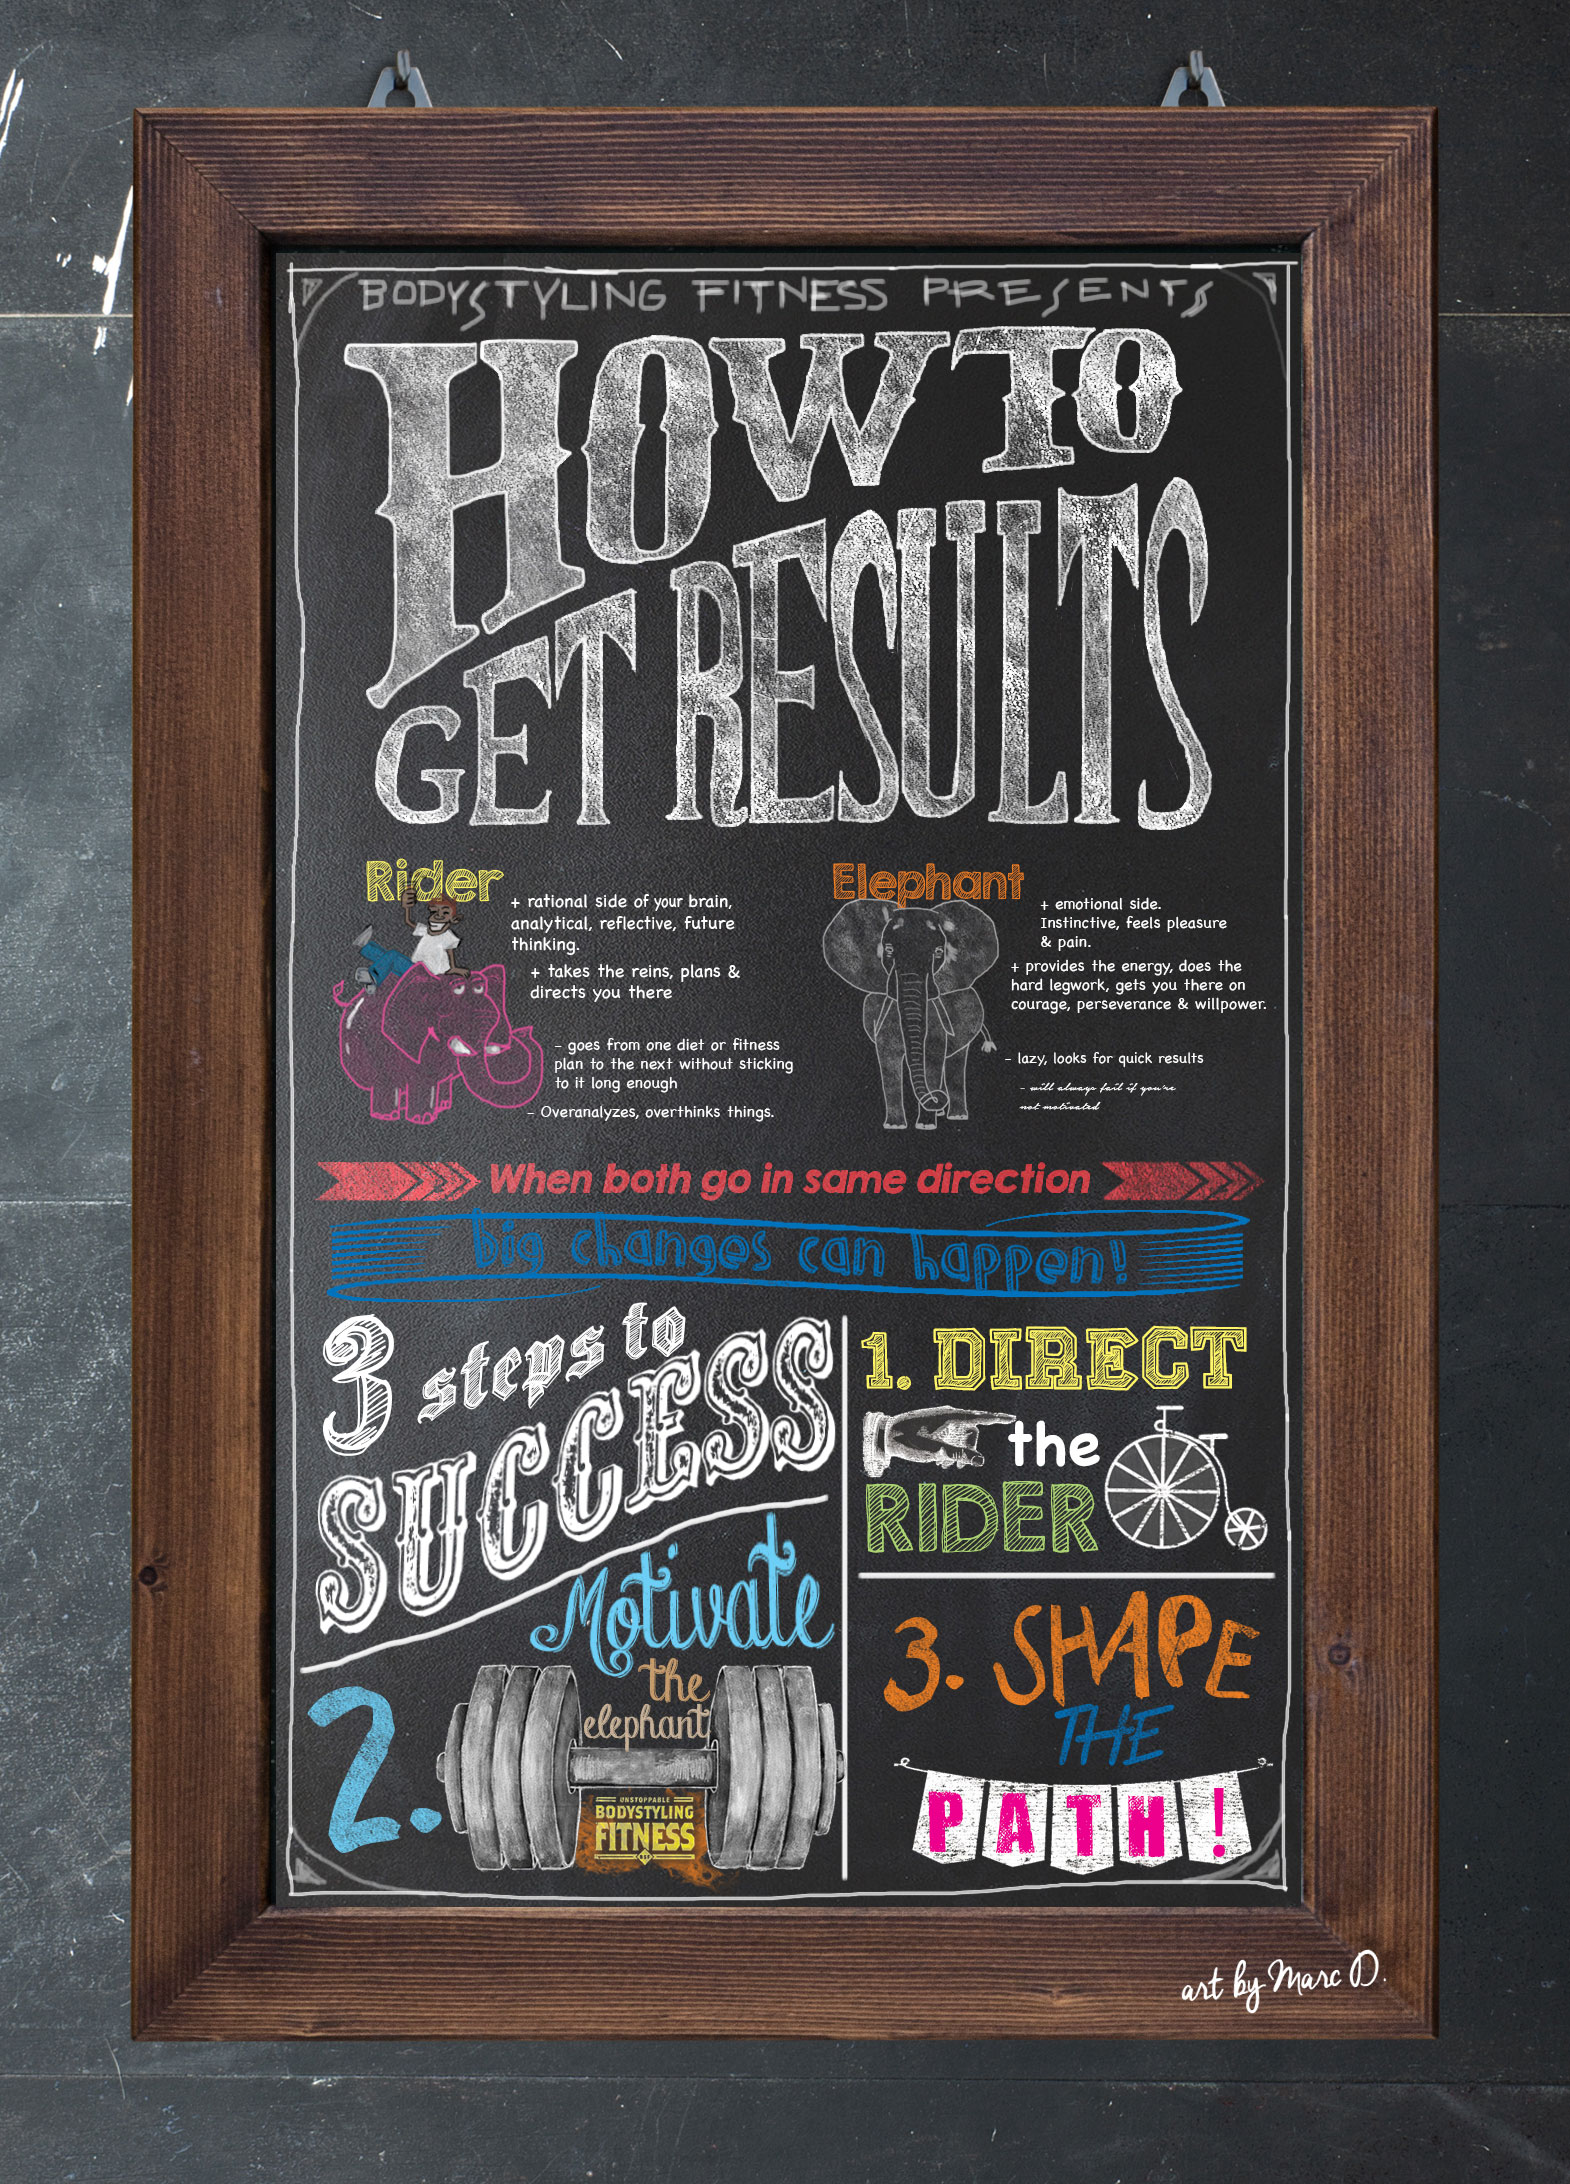 3 Steps to Change chalkboard